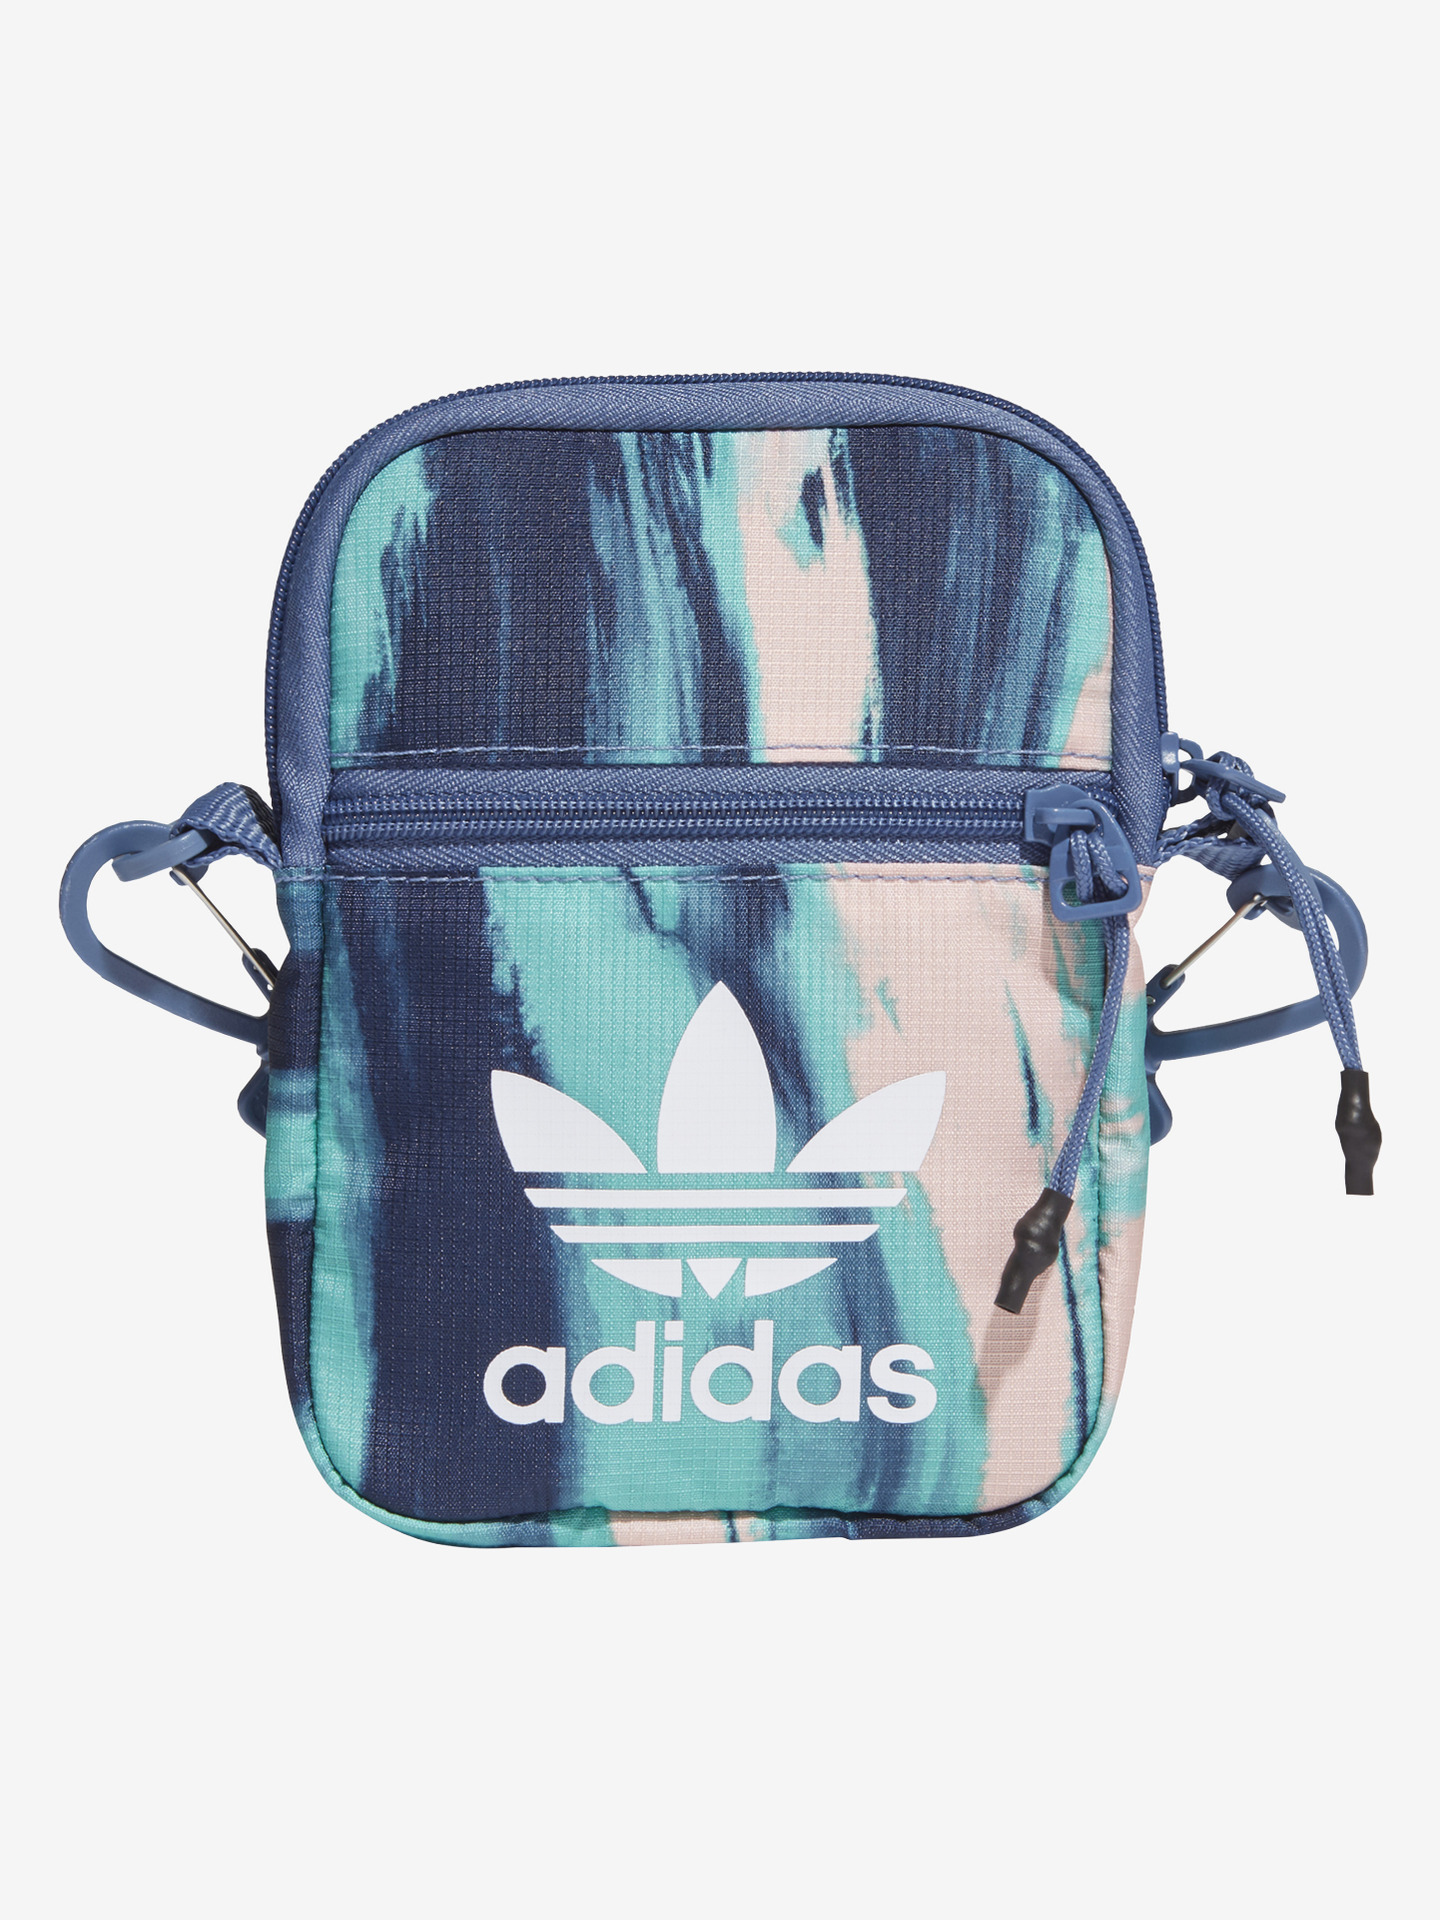 R.Y.V. Cross body bag adidas Originals Modrá